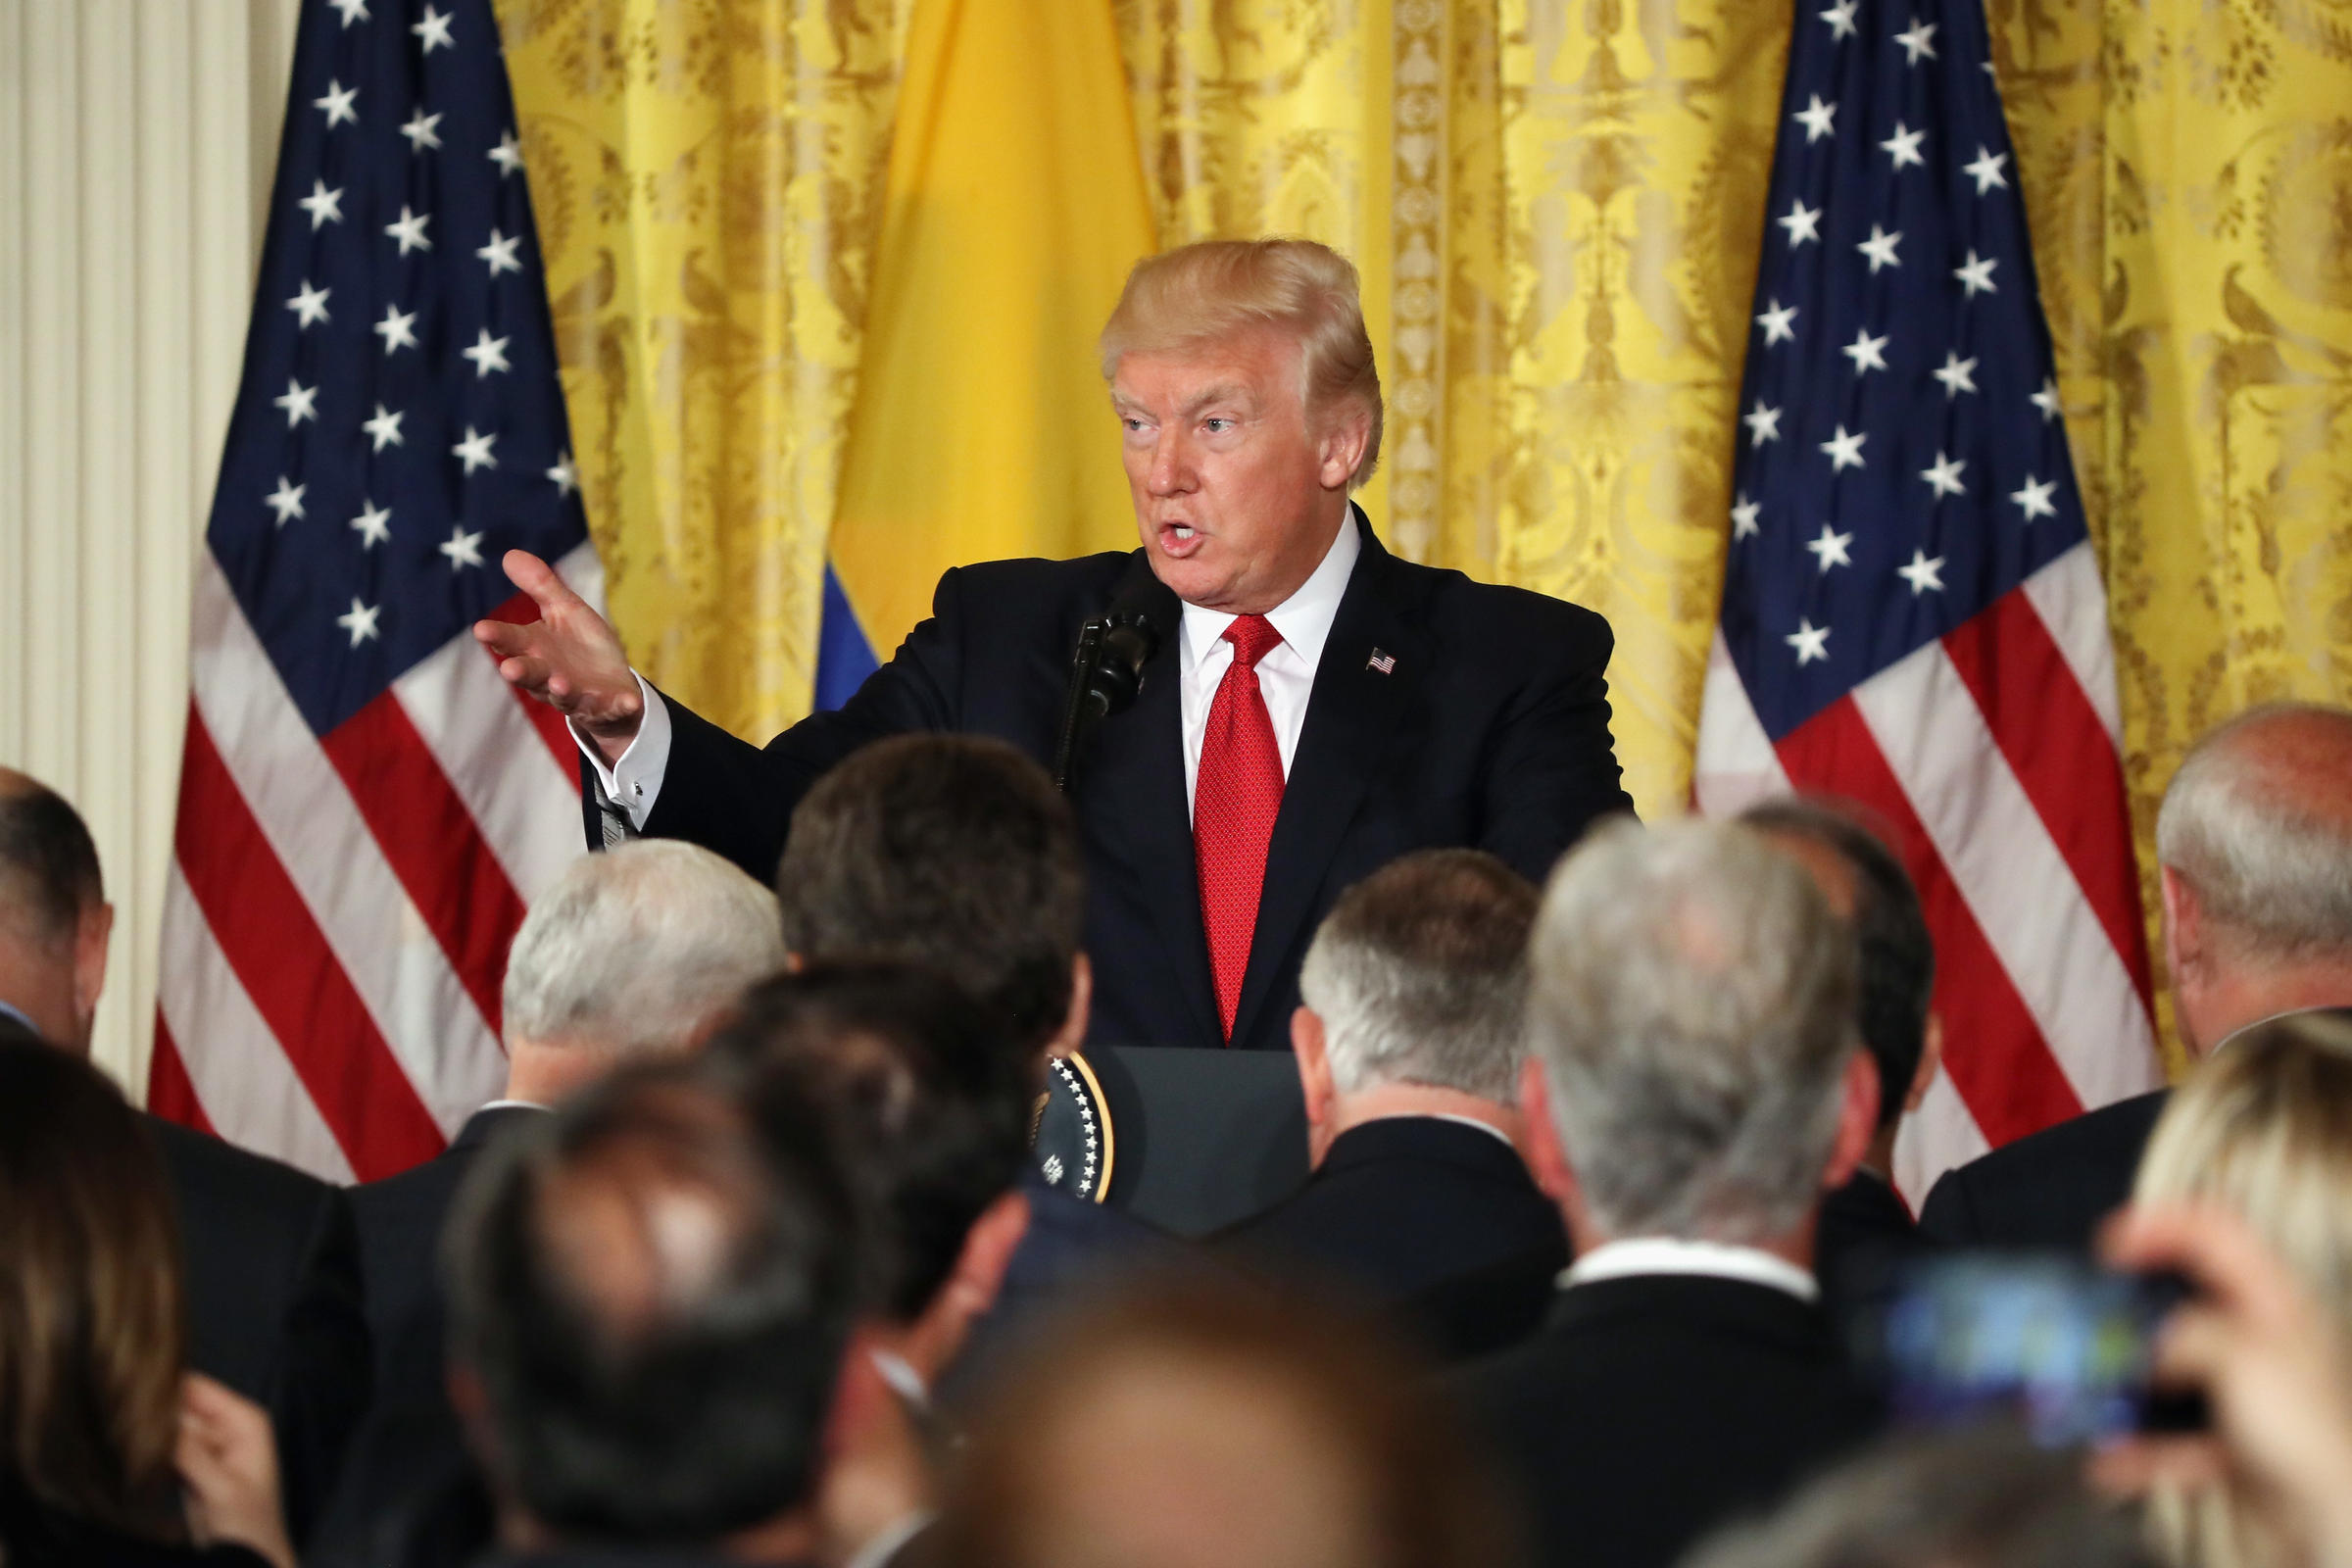 President Trump Holds Press Conference With Colombia's President Before Overseas Trip